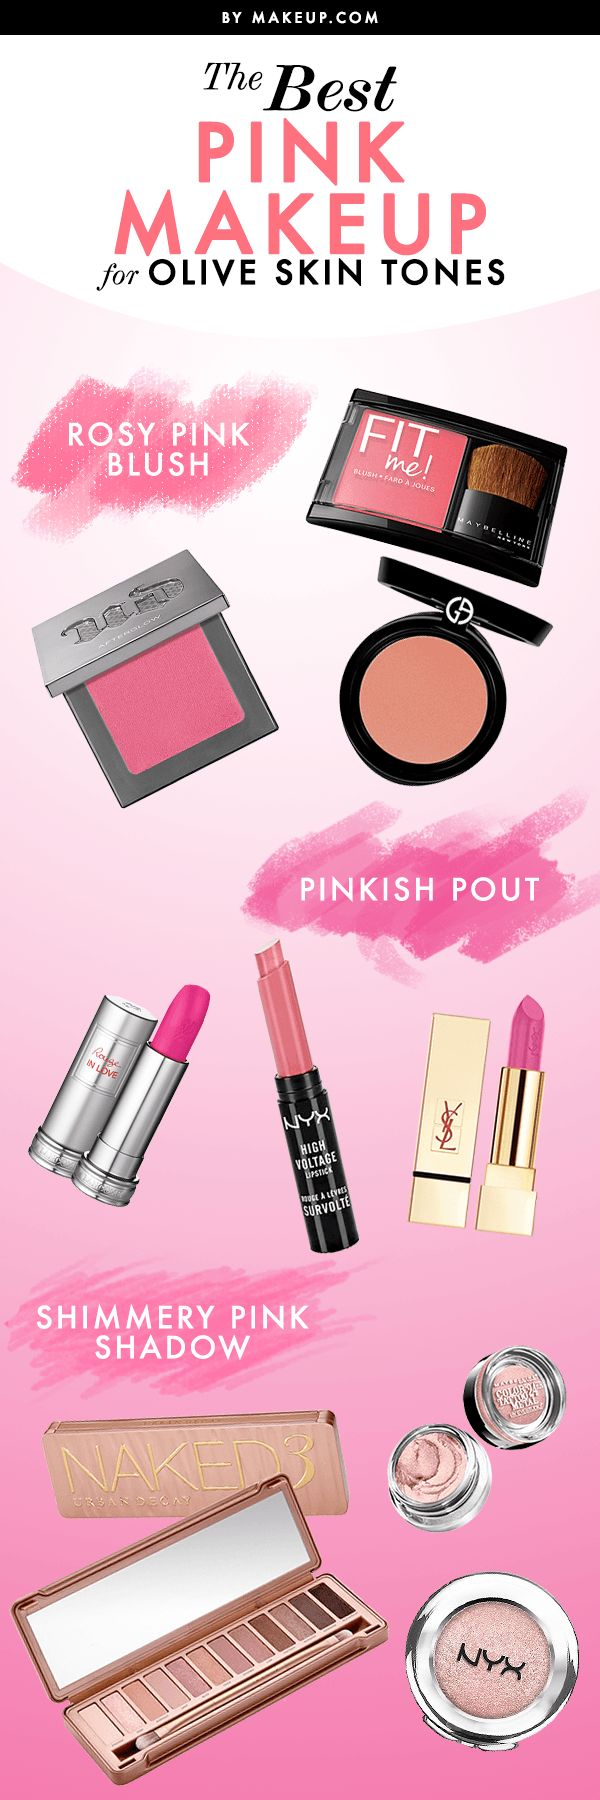 The Best Pink Makeup for Olive Skin Tones